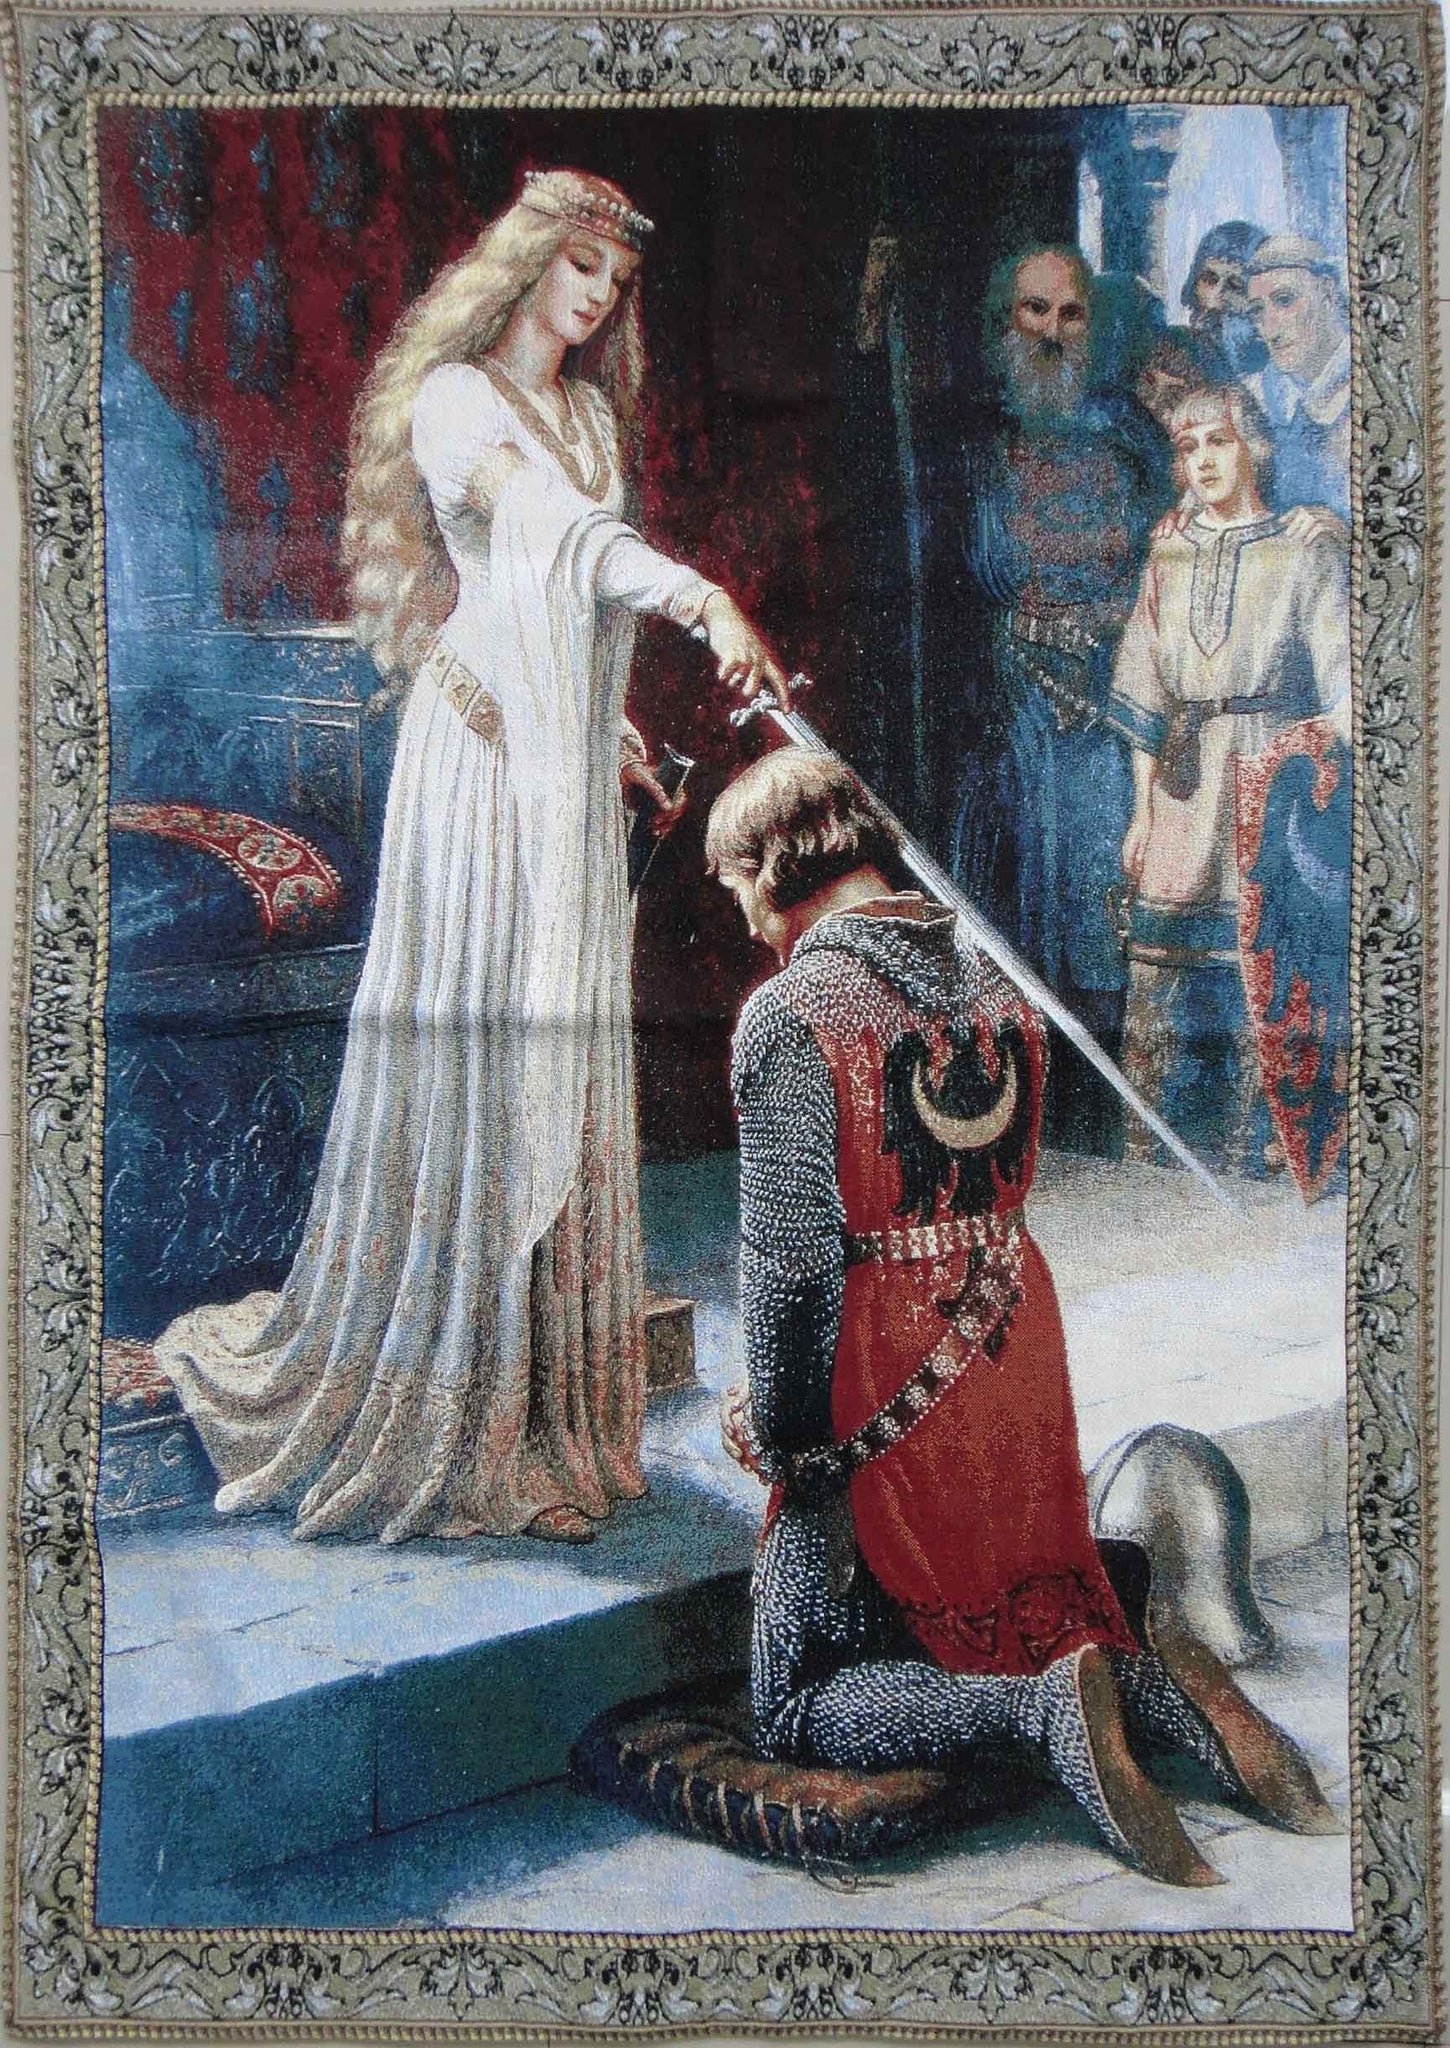 "WH-EB-AC | EDMUND BLAIR LEIGHTON ACCOLADE 39 X 55 "" INCH WALL HANGING TAPESTRY ART - www.signareusa.com"